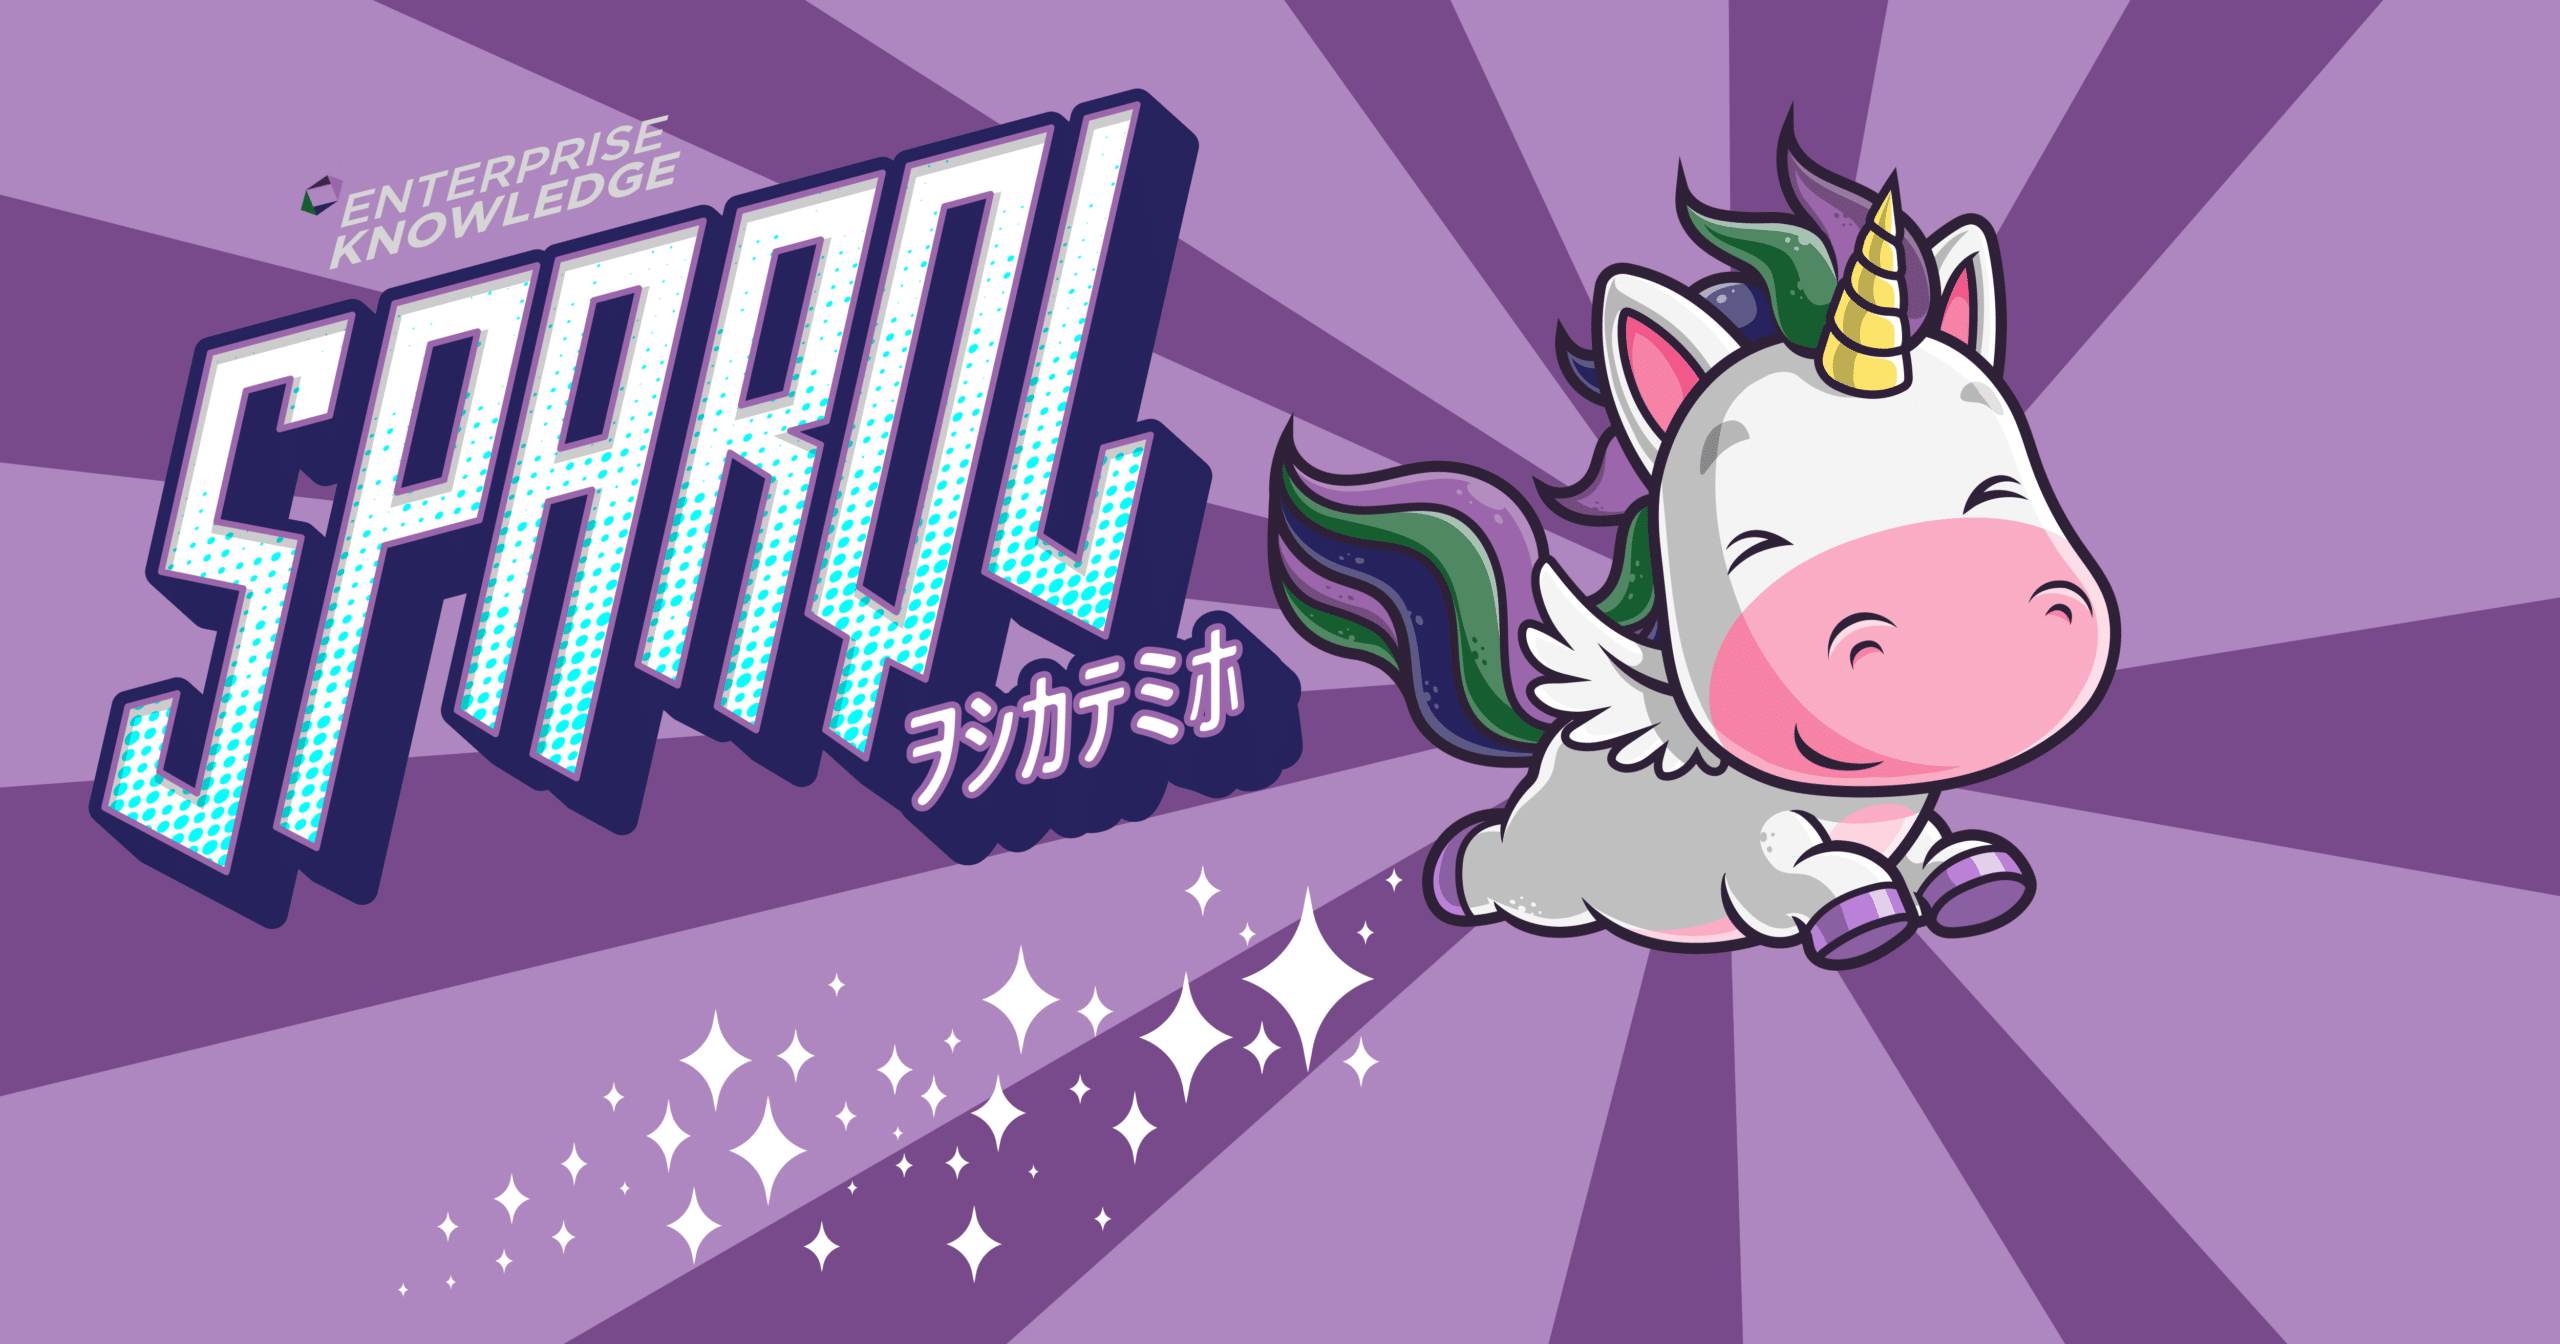 A cartoon unicorn flying through the air followed by a trail of sparkles, with the block letters SPARQL and Enterprise Knowledge above it.